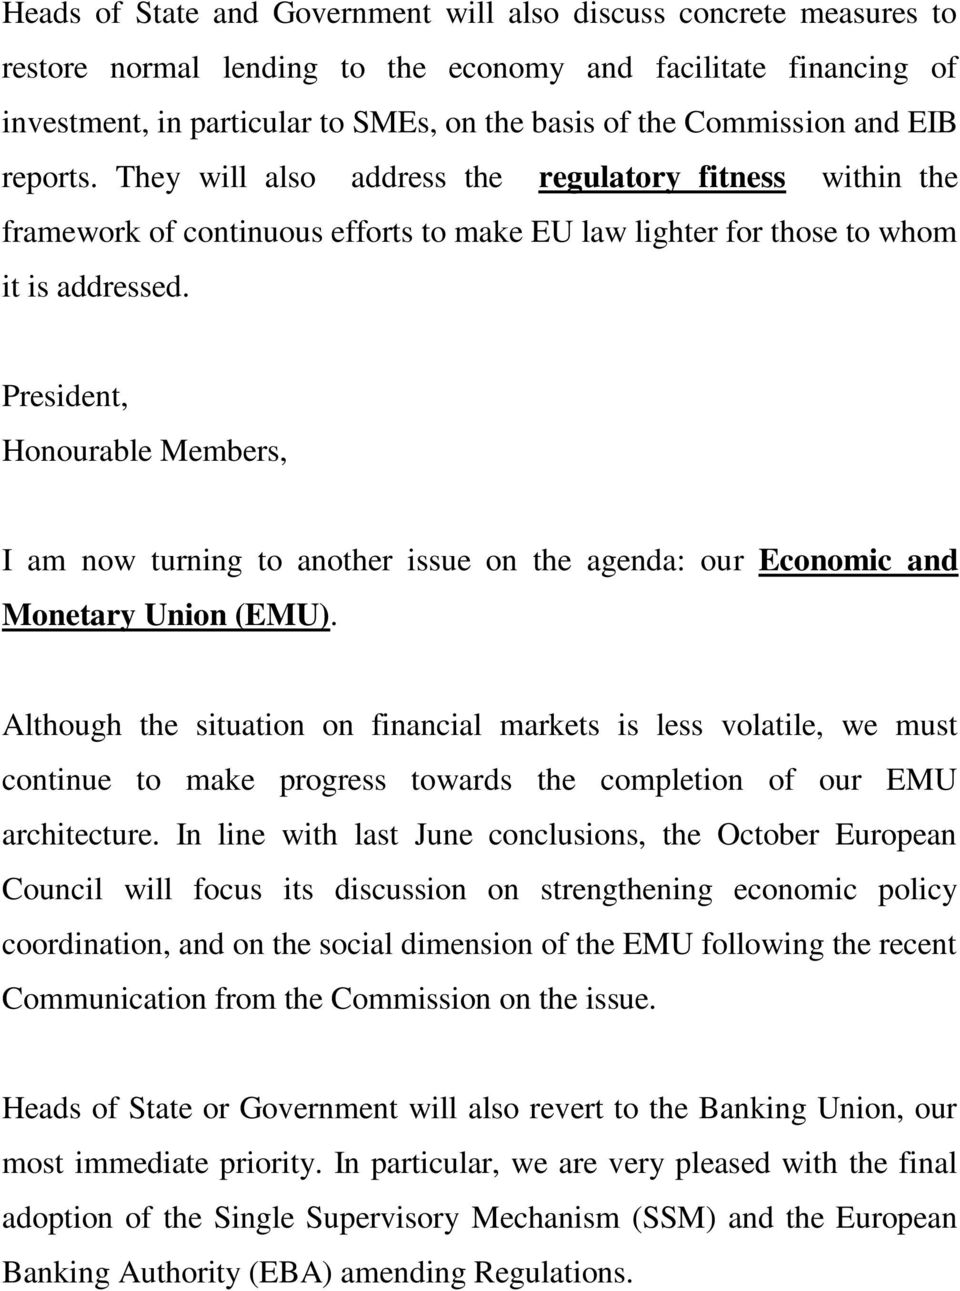 President, Honourable Members, I am now turning to another issue on the agenda: our Economic and Monetary Union (EMU).